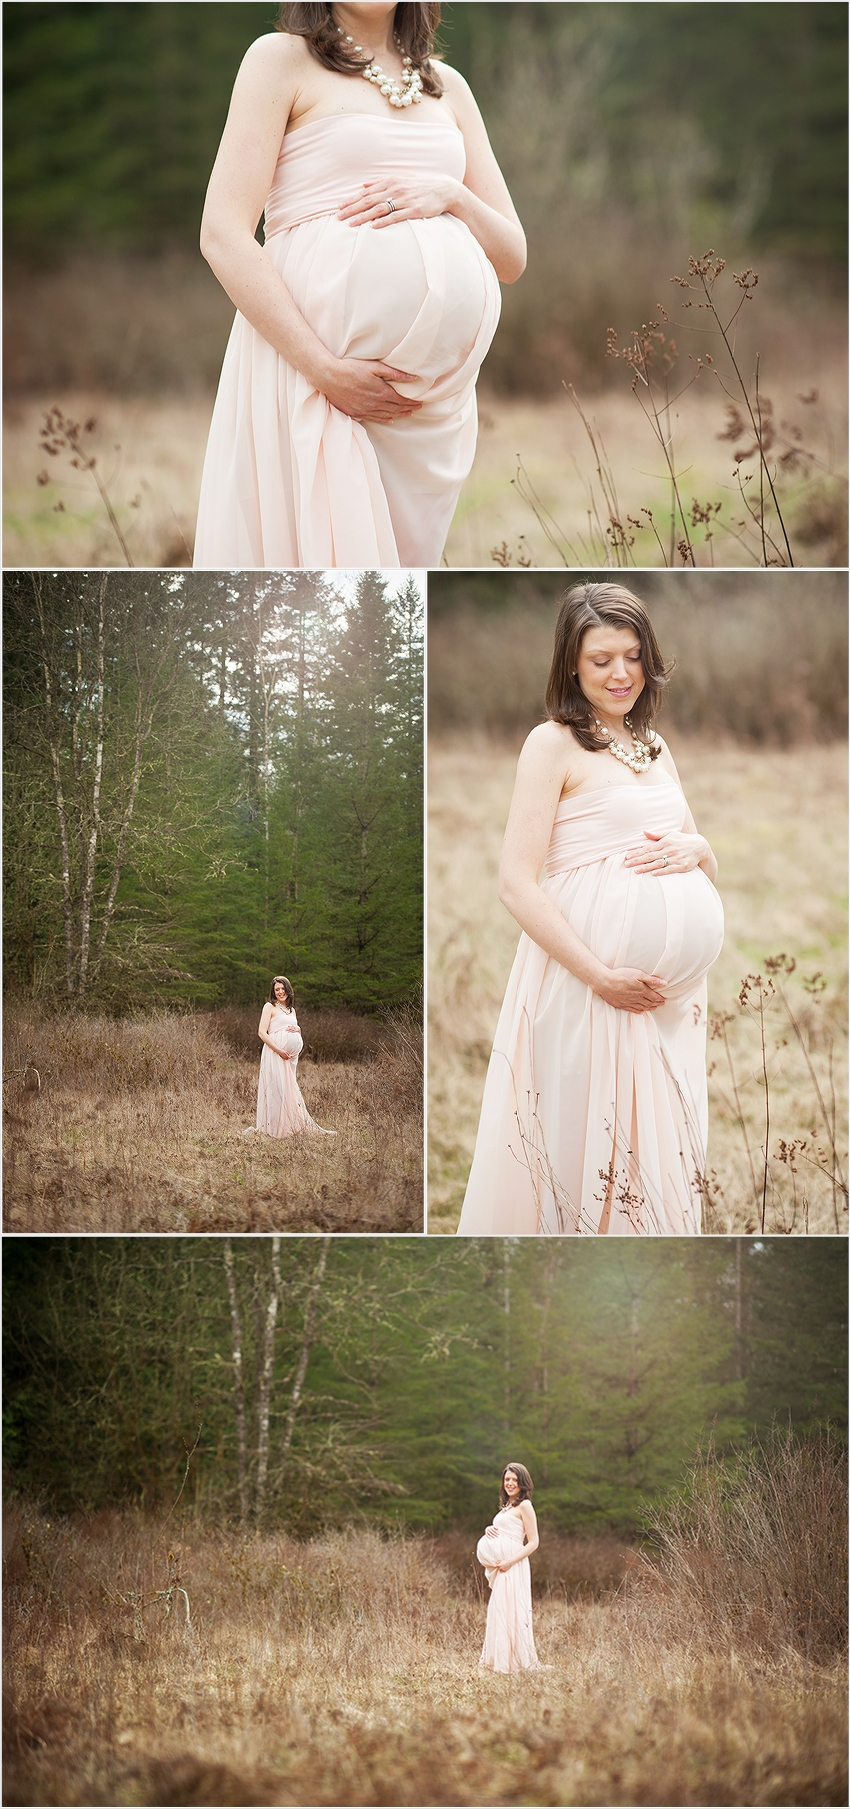 Maternity Photography Abbotsford 002 (Side 2)